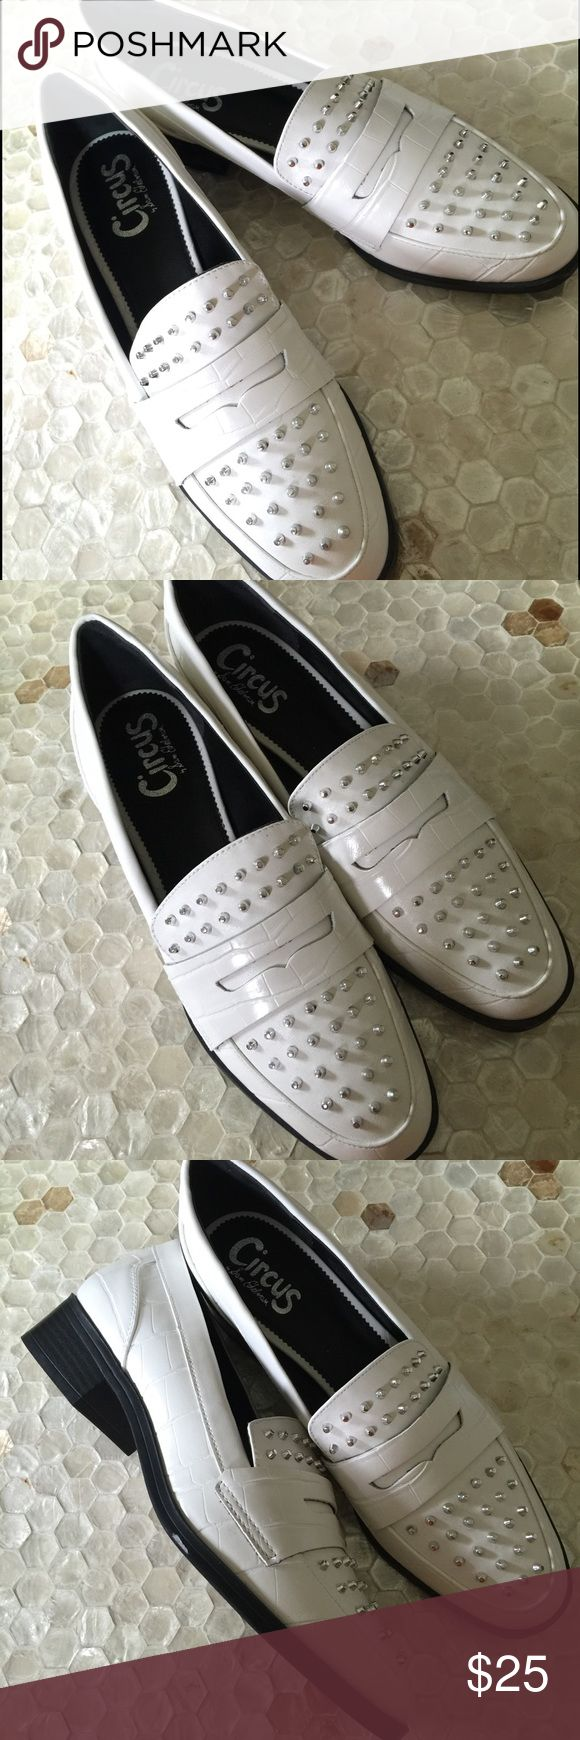 """NWOB Circus by Sam Edelman White Studded Loafers New without box! Never worn in great condition. Circus by Sam Edelman White studded 1.5"""" heel shoes. Circus by Sam Edelman Shoes Flats & Loafers"""